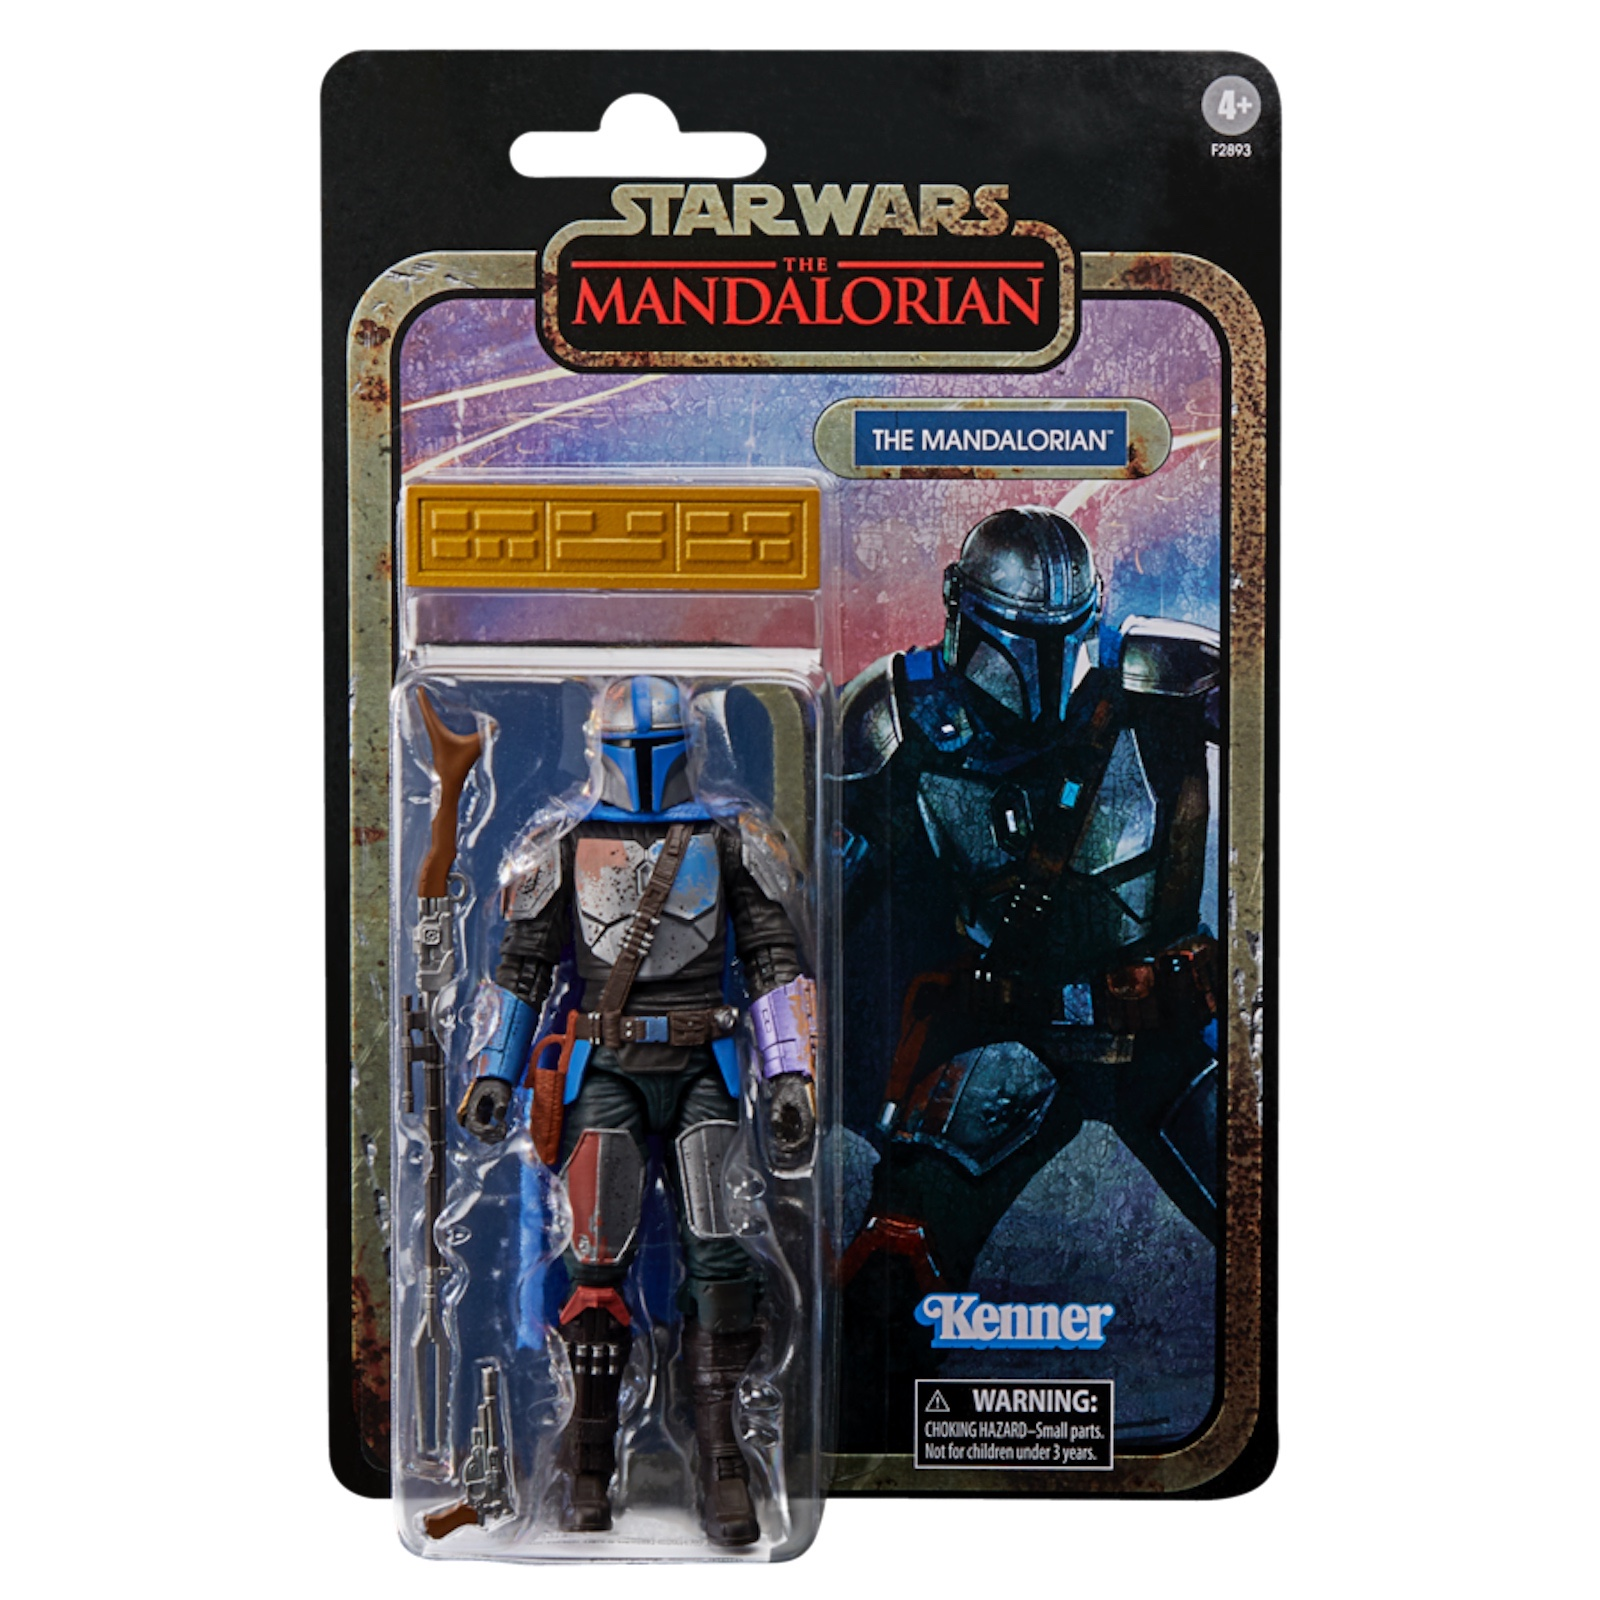 Black-Series-The-Mandalorian-Version-2-Credit-Collection-Carded.jpg